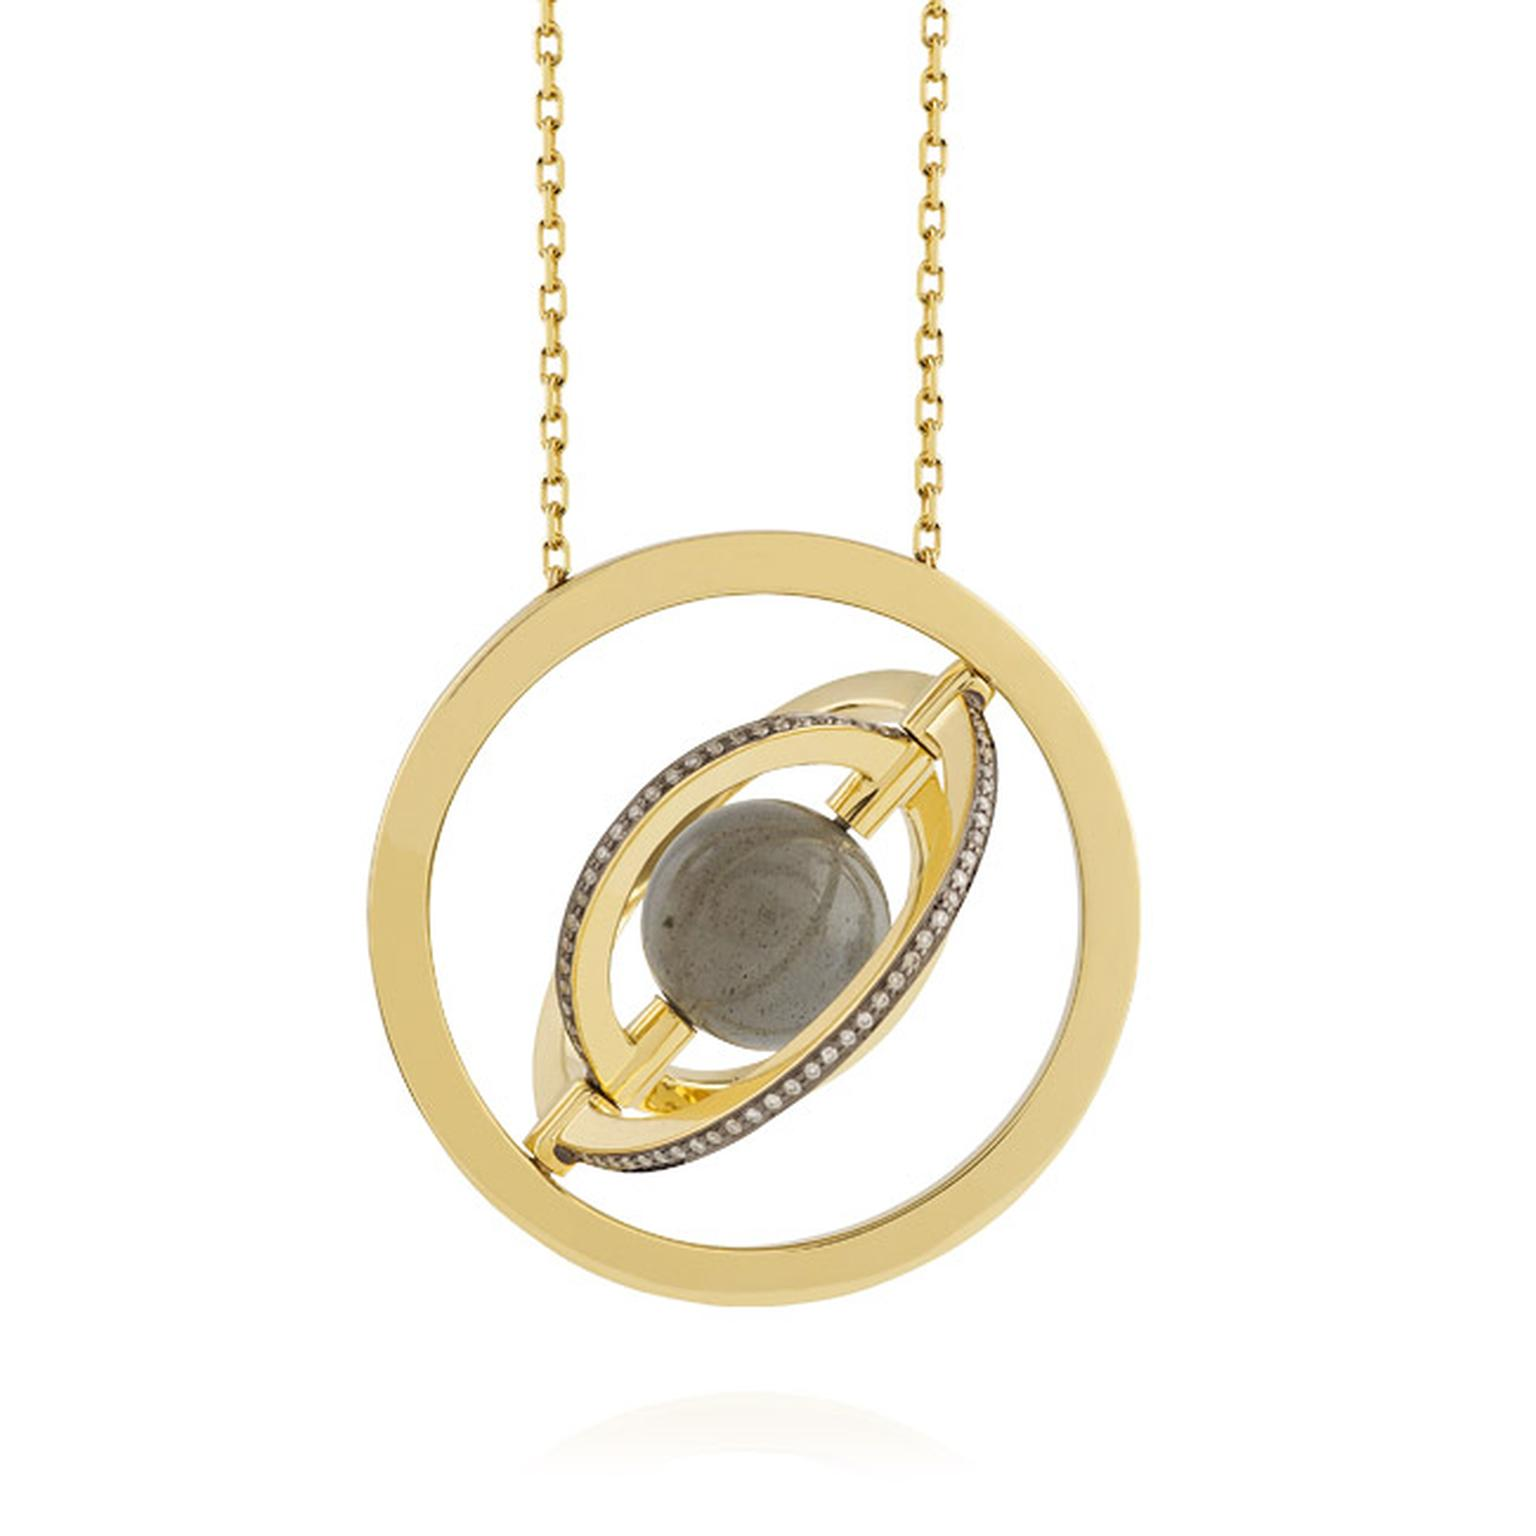 Noor Fares Urania pendant with a centre 7.17ct labradorite sphere surrounded by a rotating setting of three rings of yellow gold and diamonds